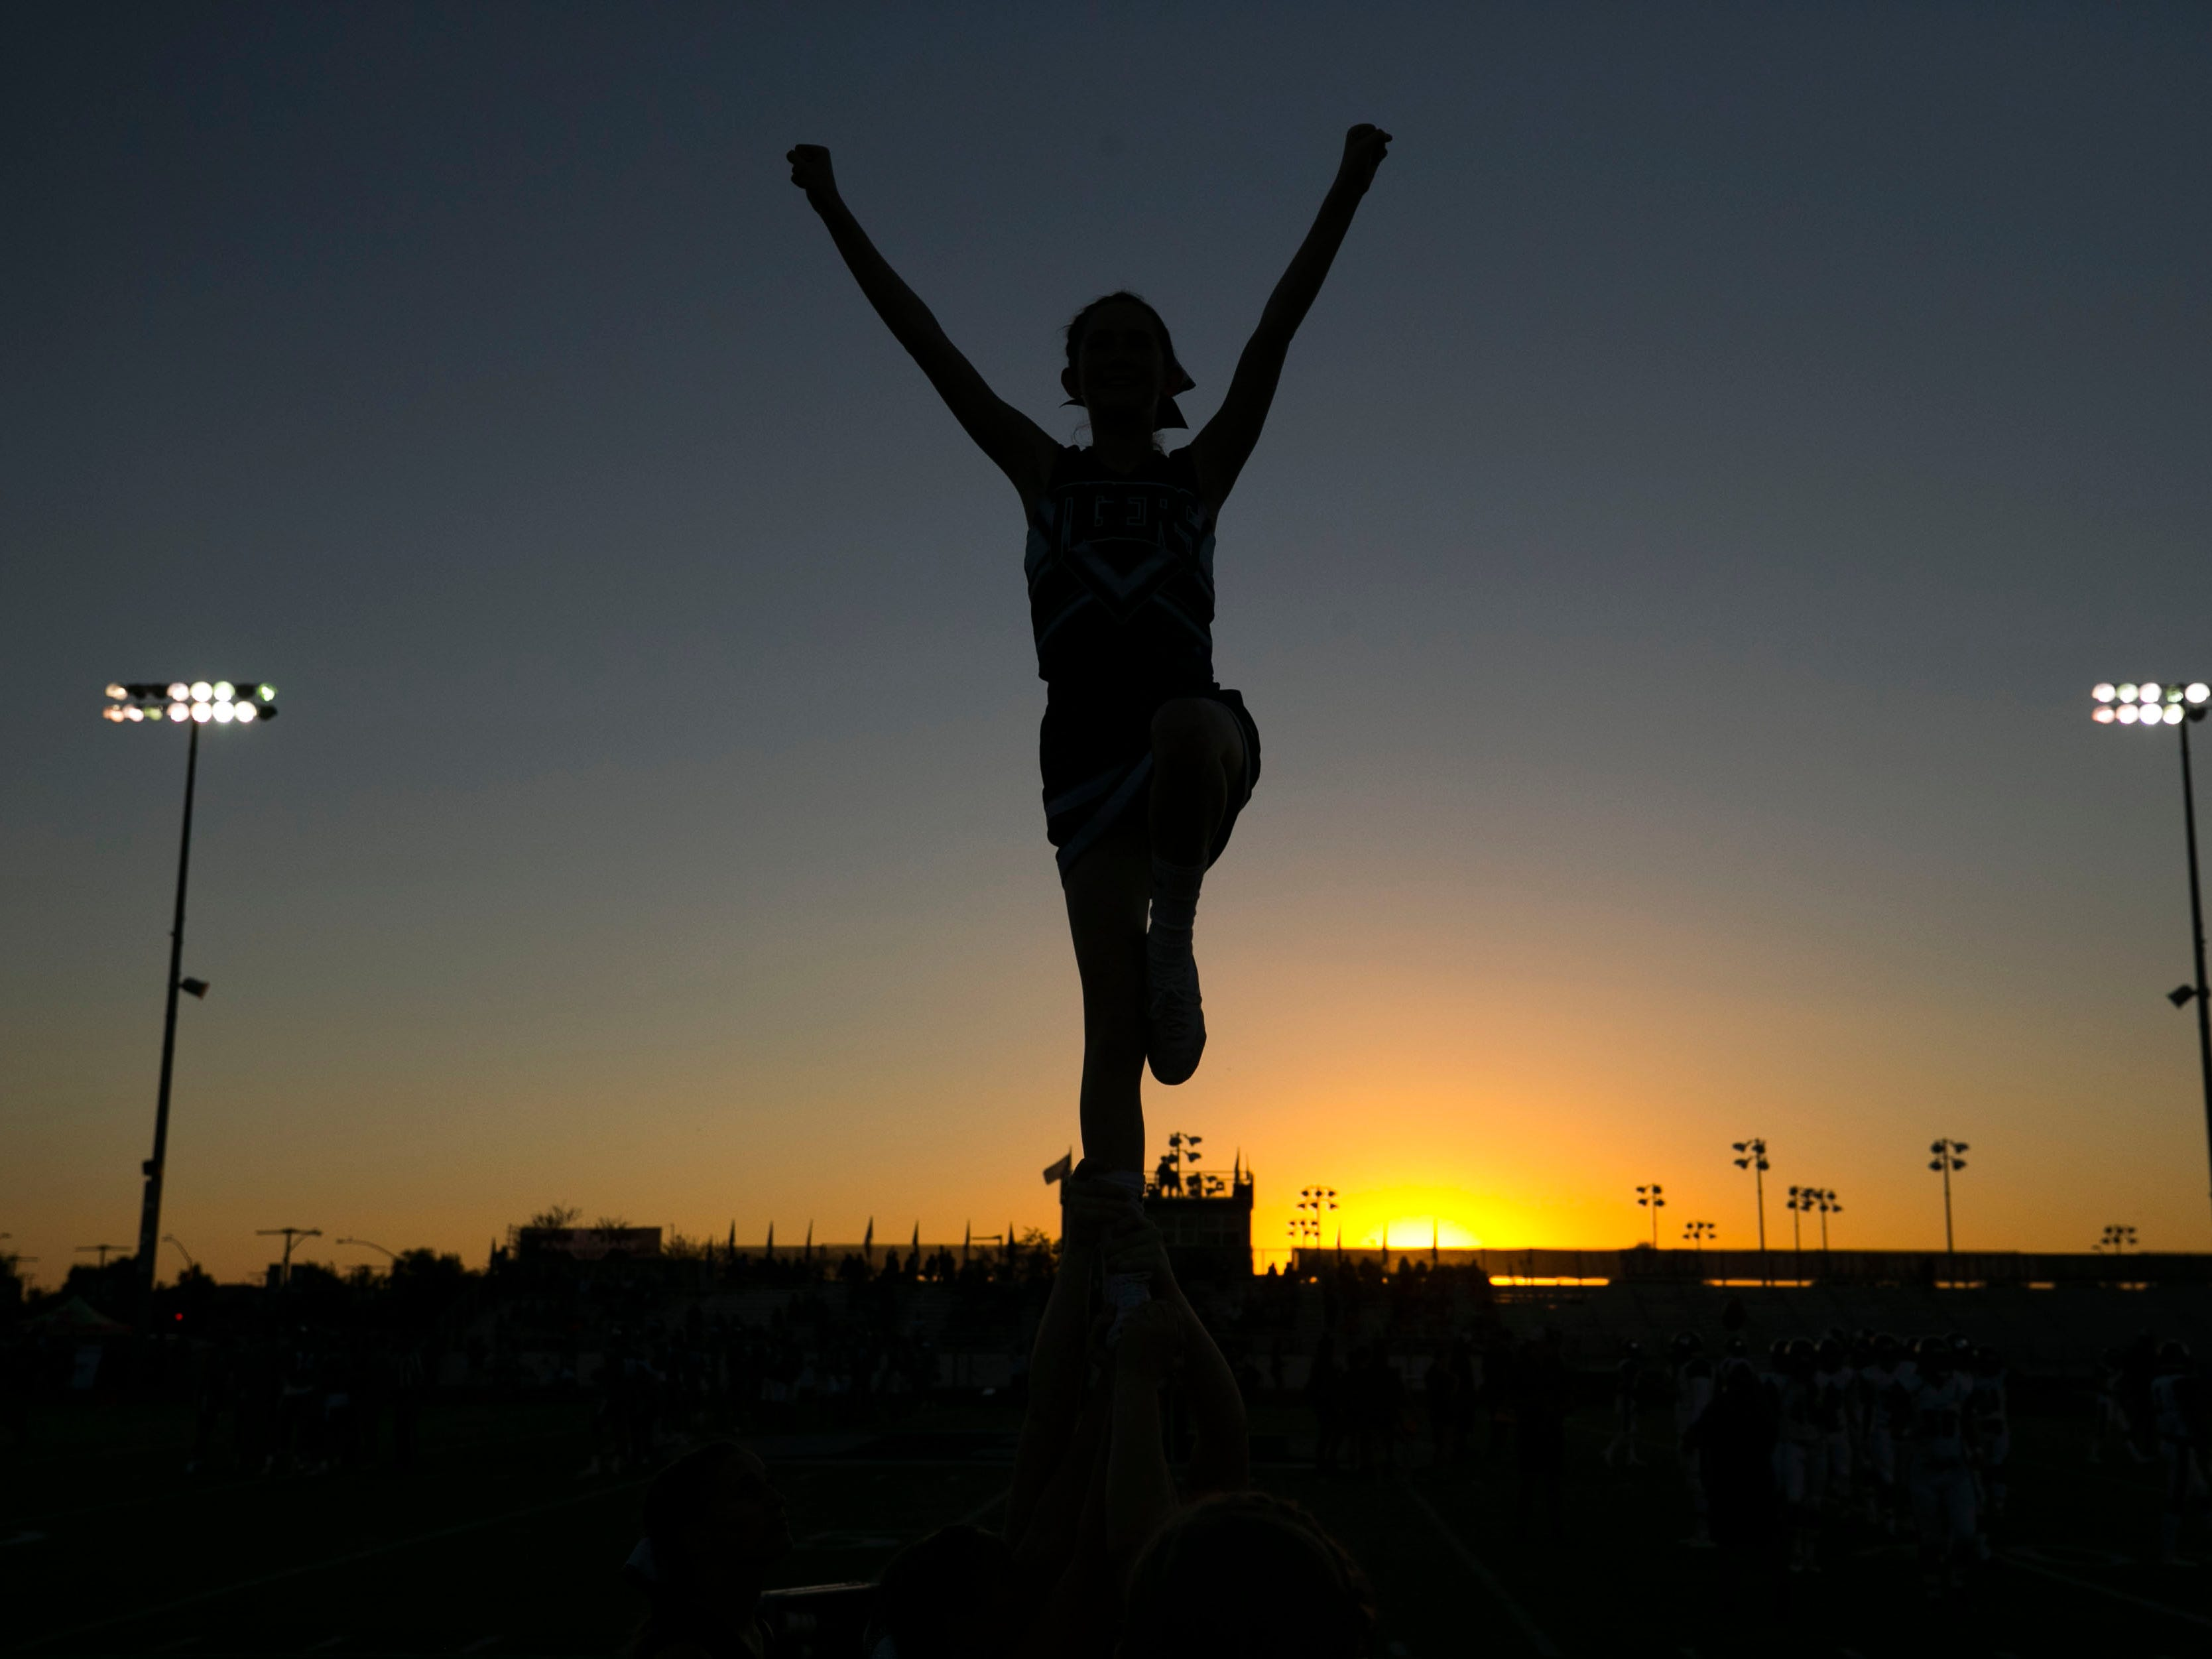 Millennium High cheers perform stunts before the high school football game between Millennium and Higley High at Higley High in Gilbert on Friday evening, September 14, 2018.